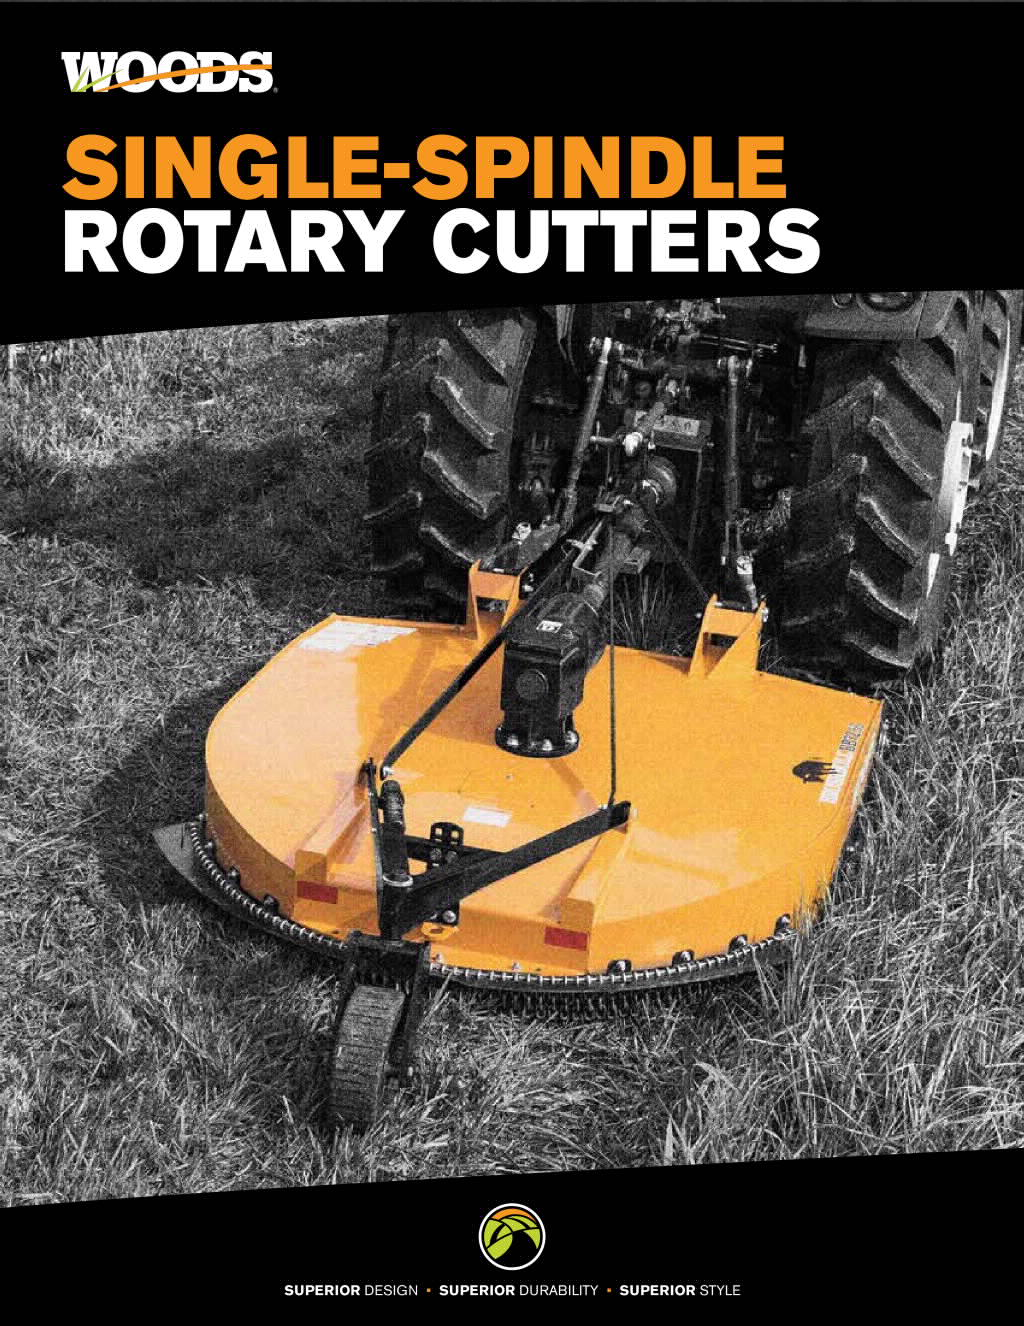 Single-spindle Rotary Cutters